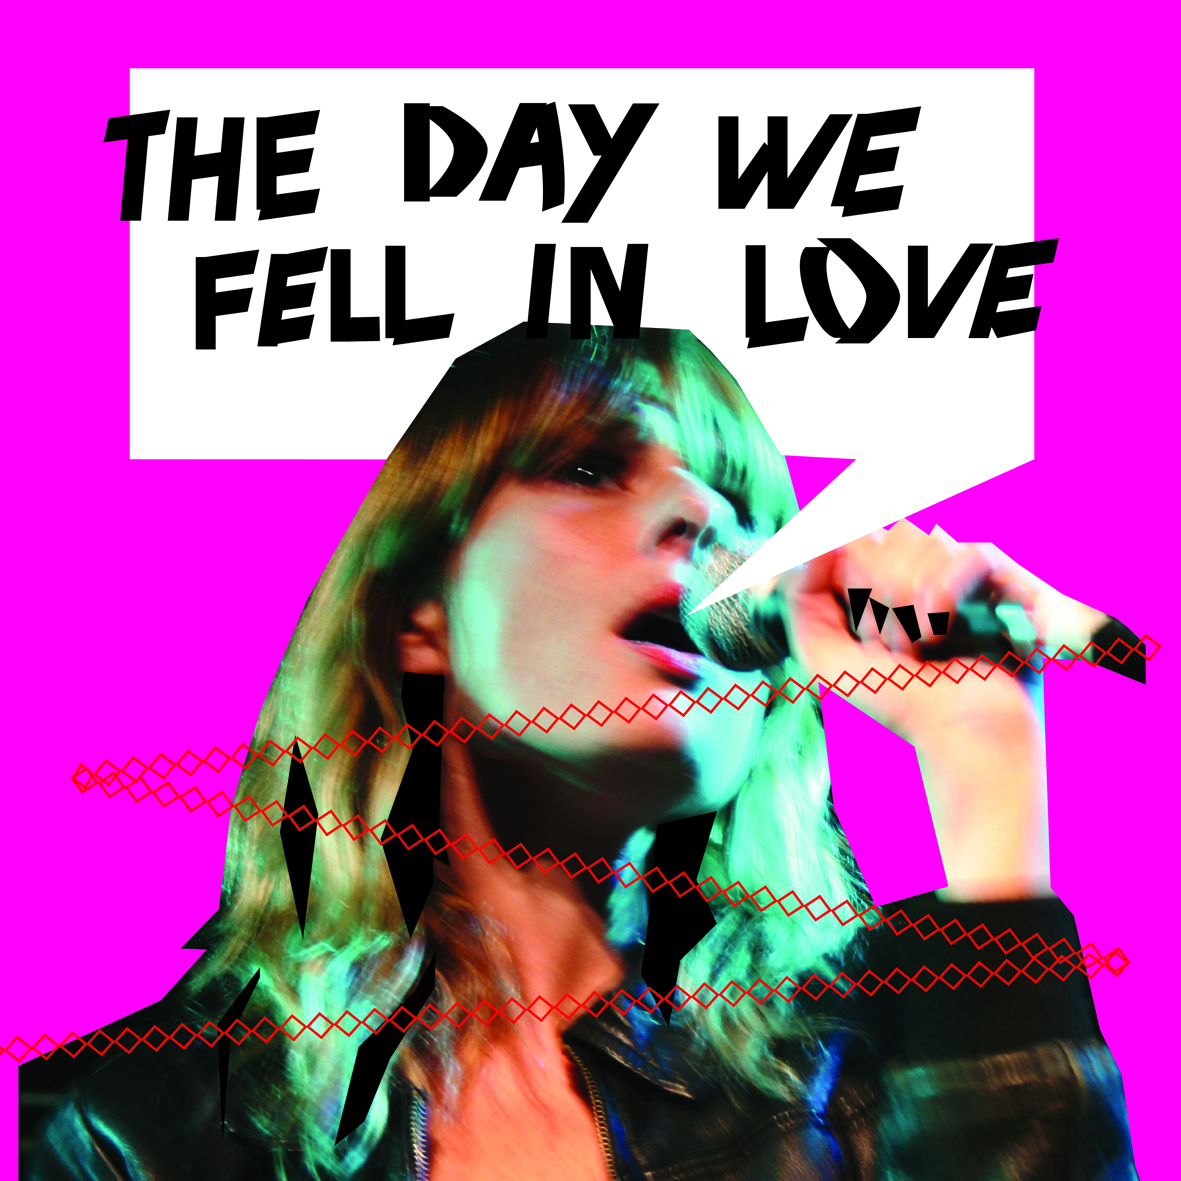 The Day (we fell in love)